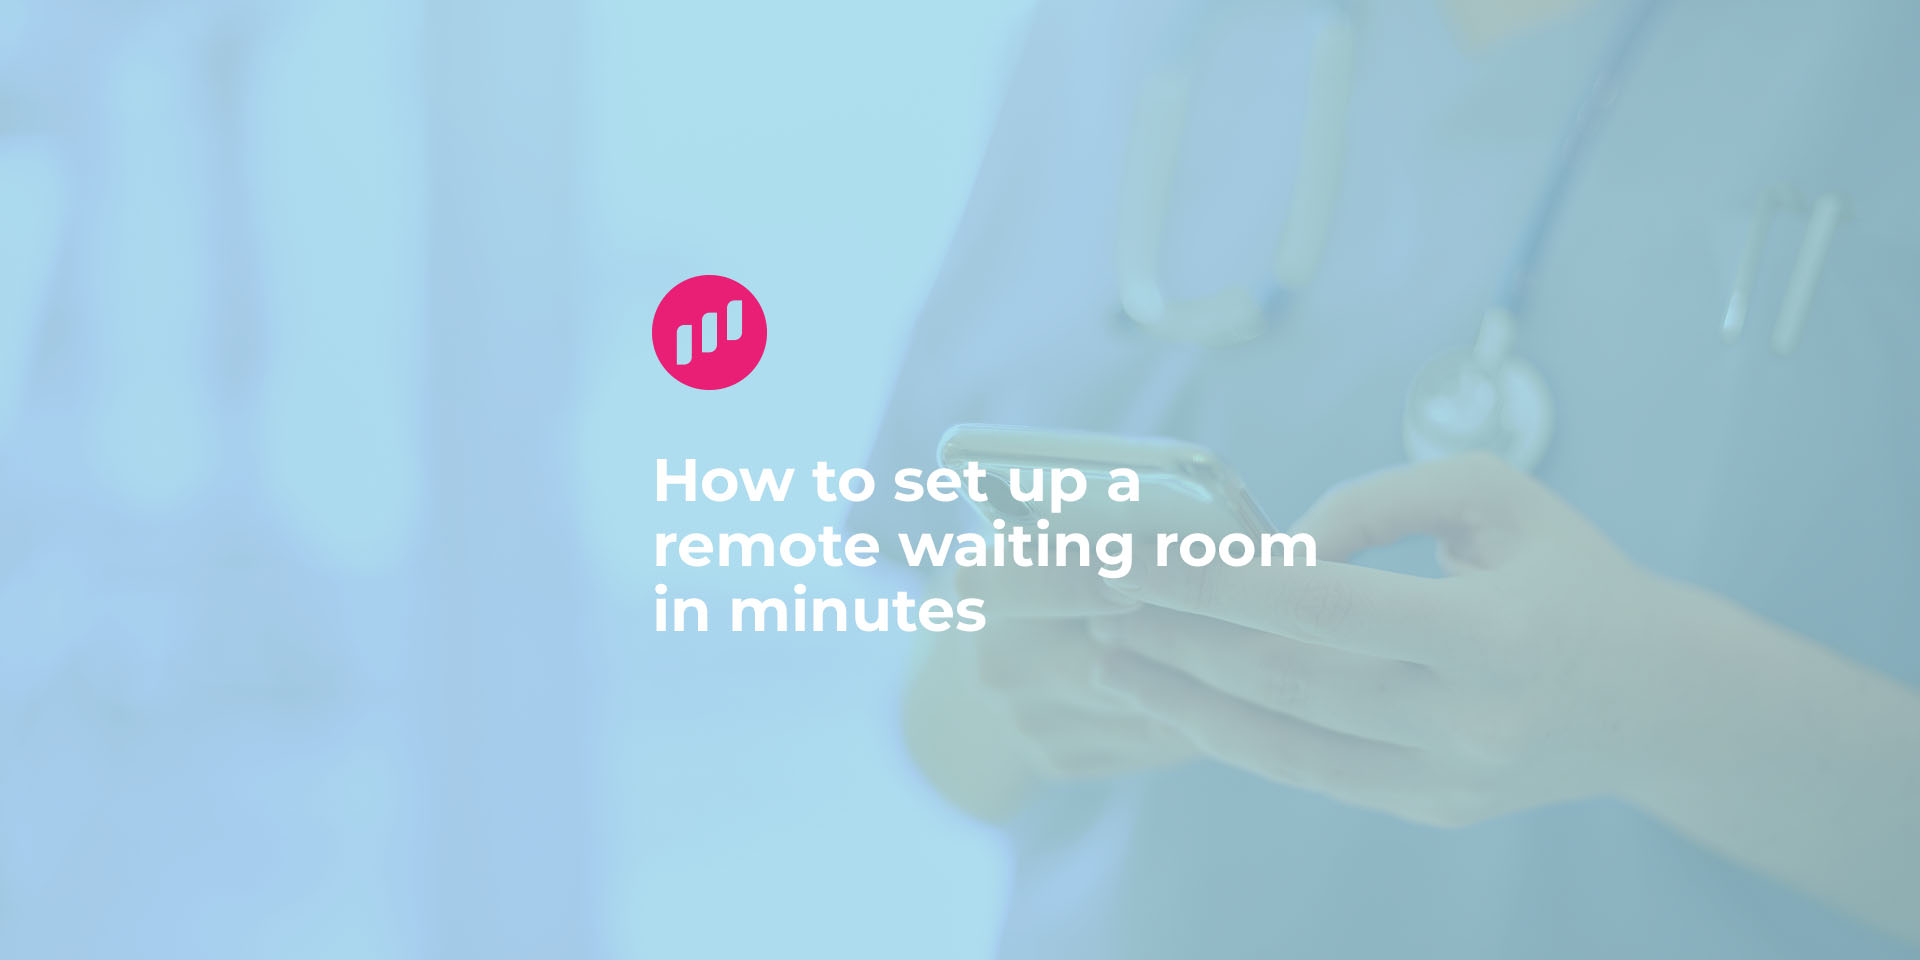 How to set up a remote waiting room in minutes